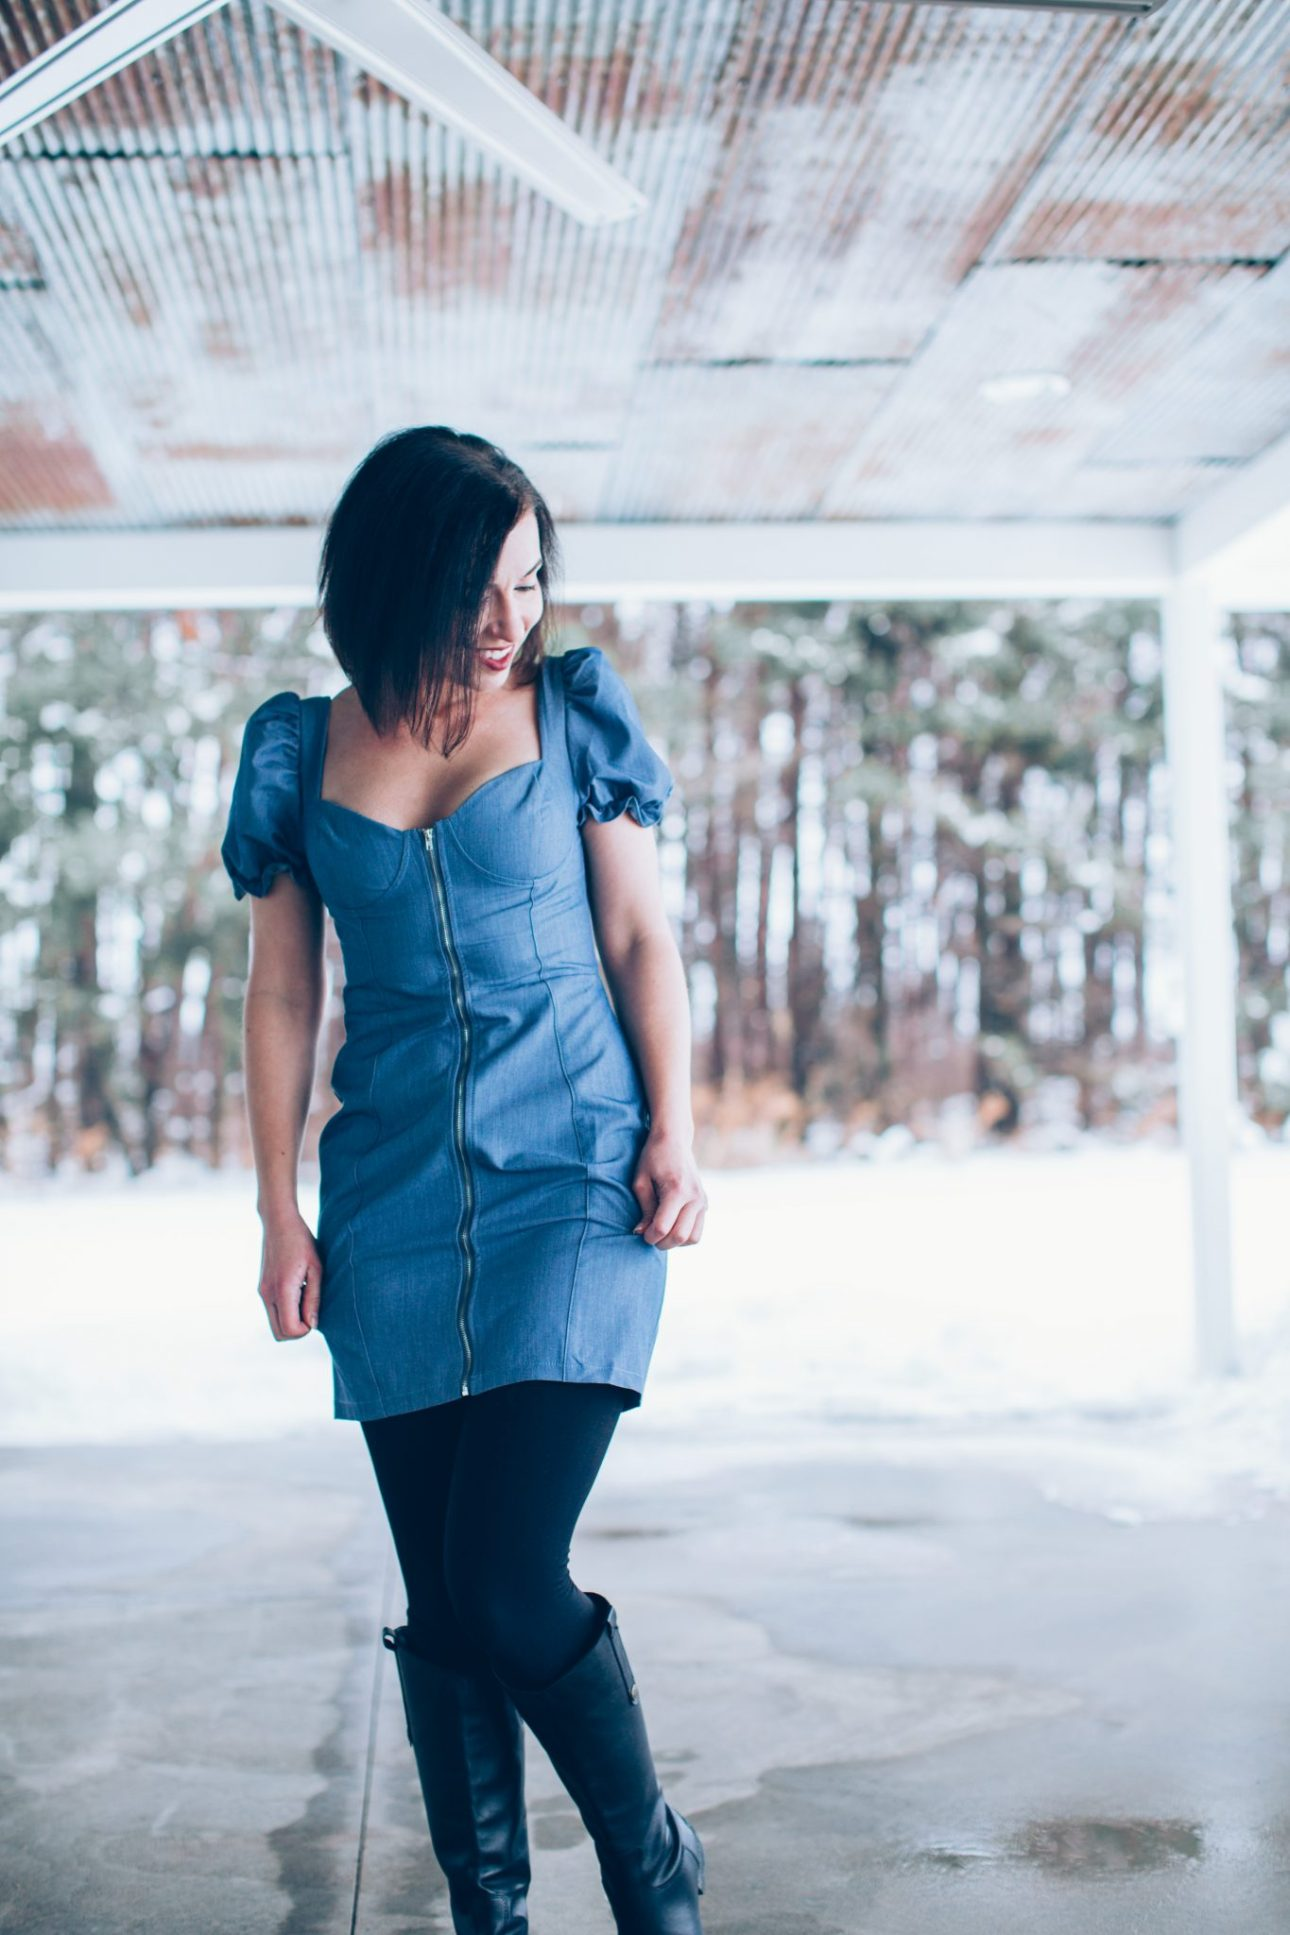 Styling a Denim Mini Dress With Leggings + Boots for Winter